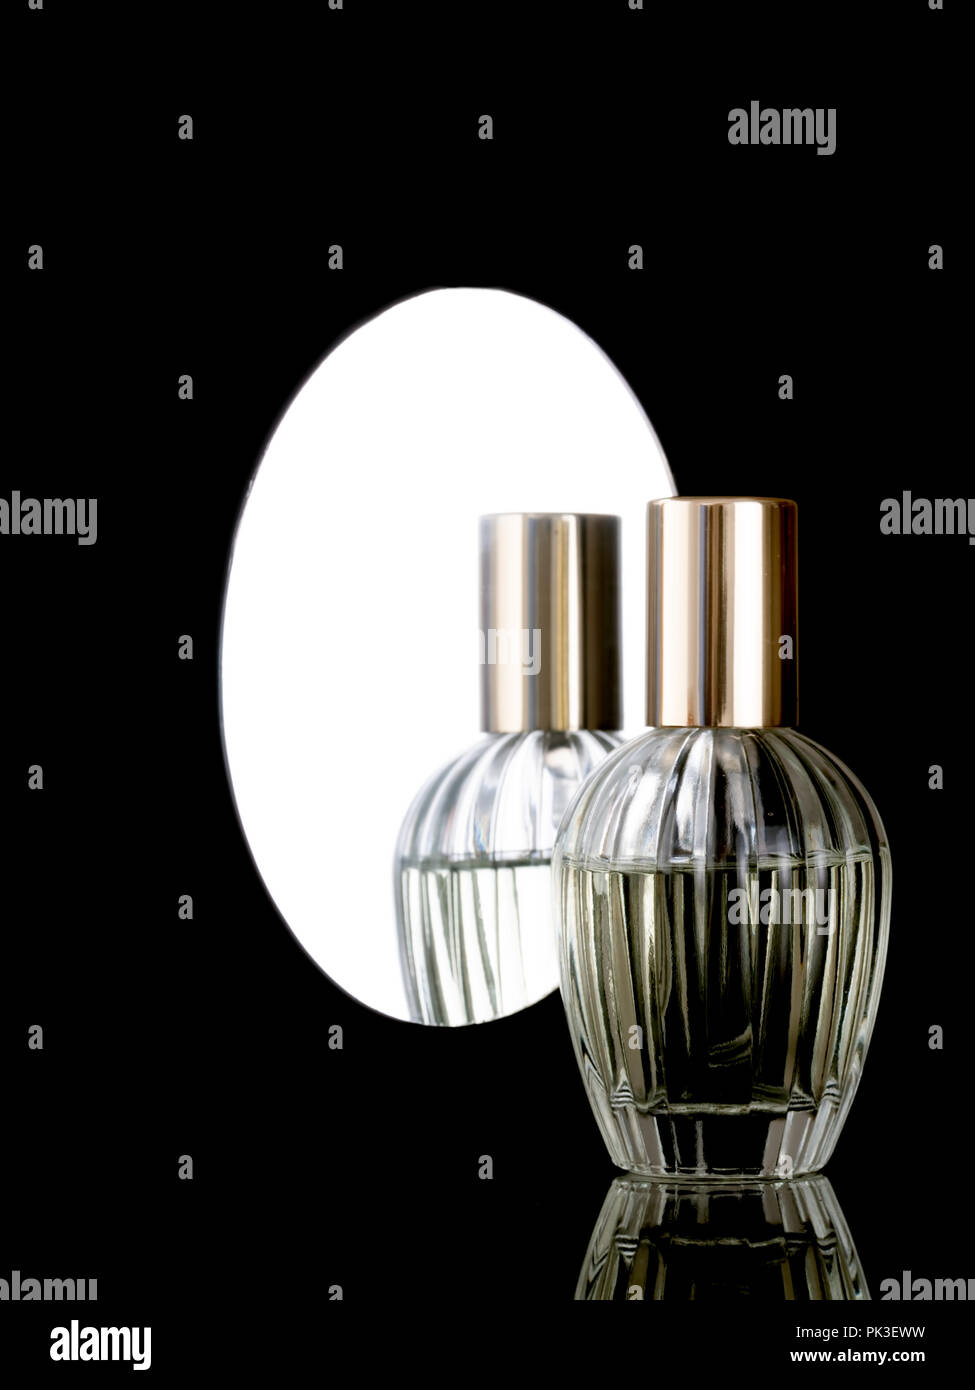 Elegant clear glass perfume bottle on a shiny black background with reflection also in mirror behind. With copyspace. - Stock Image